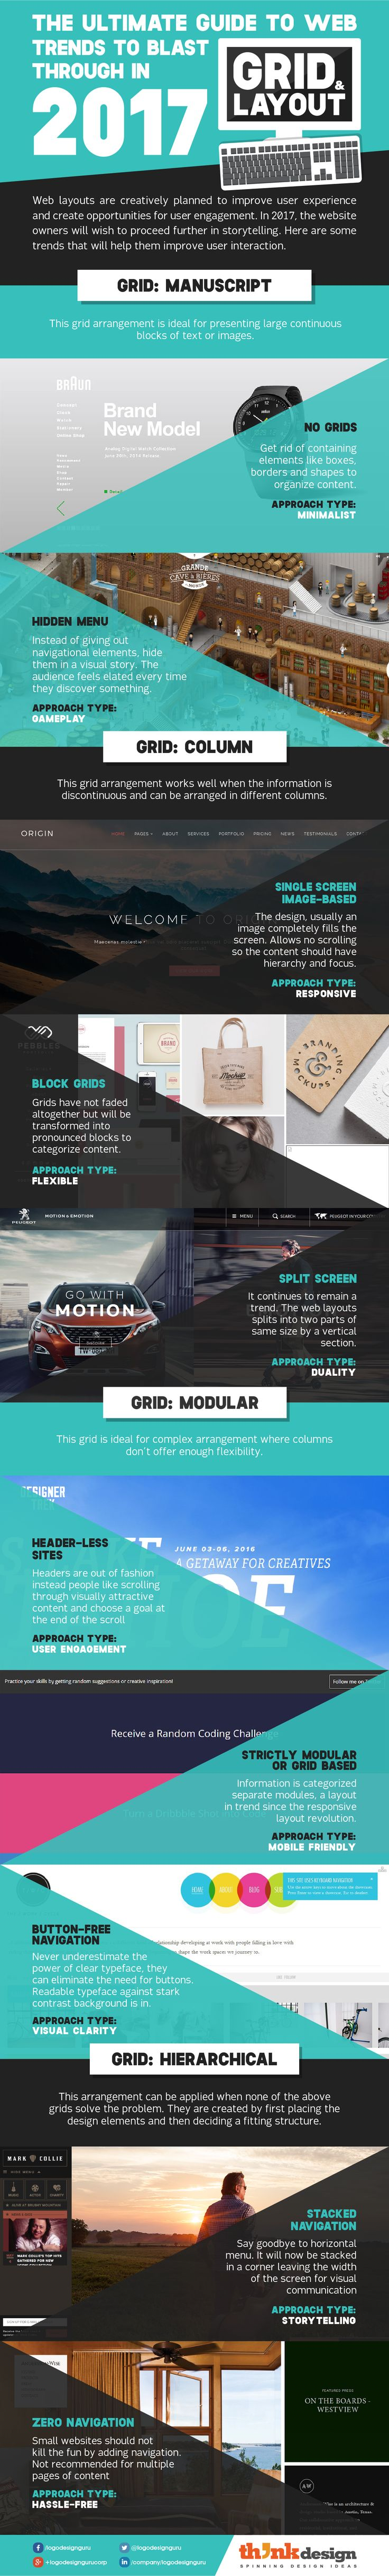 Web and grid layouts for 2017 #trends #weblayout